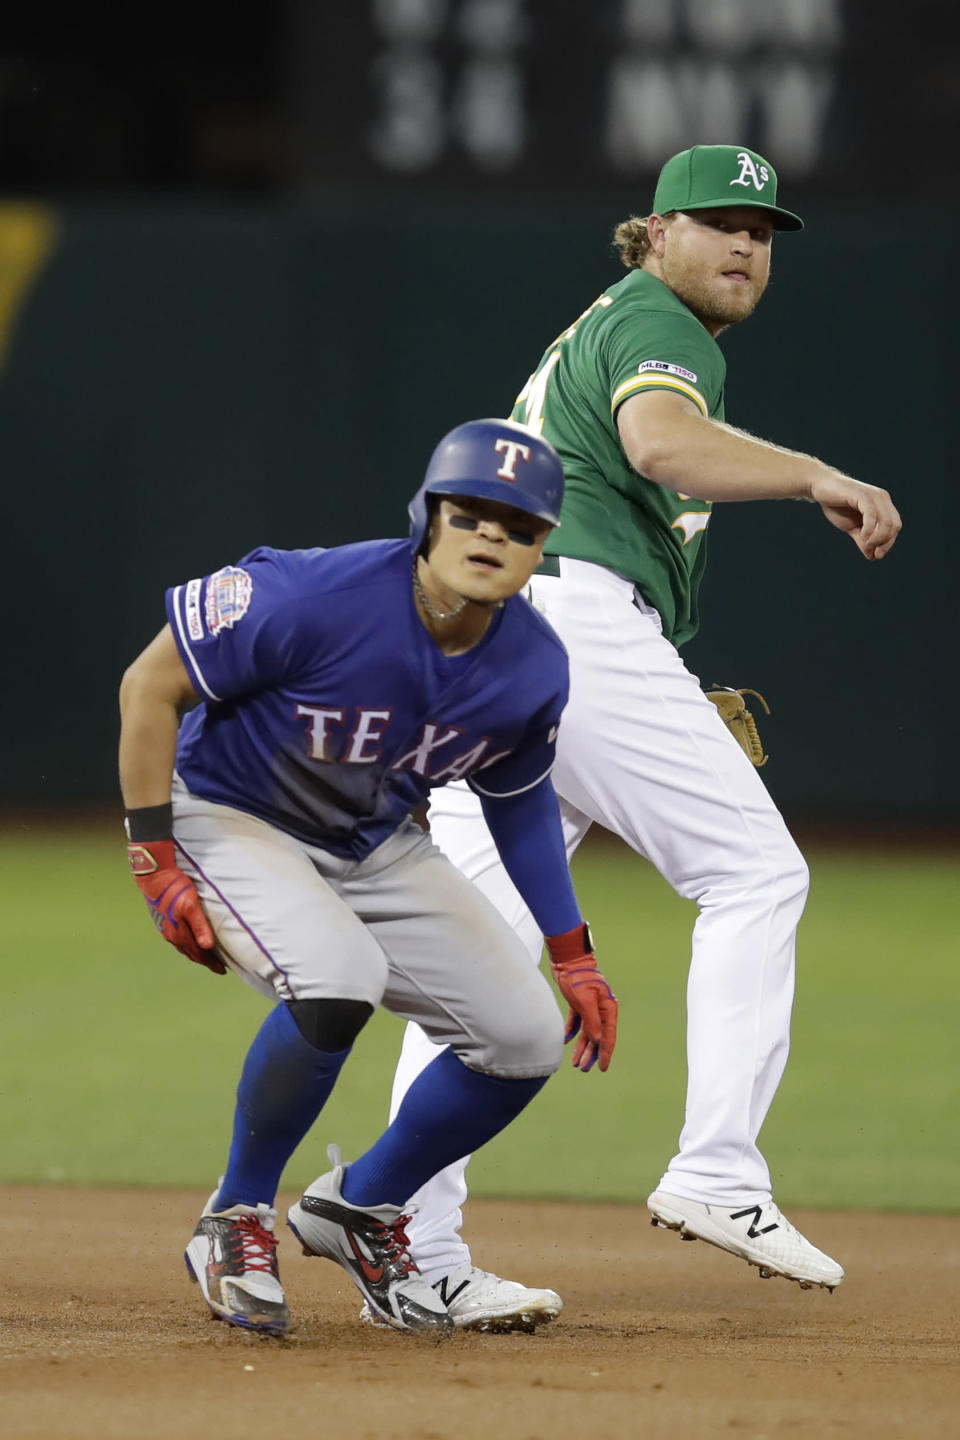 Oakland Athletics Sheldon Neuse, right, and Texas Rangers' Shin-Soo Choo look to first base during a double play in the first inning of a baseball game Friday, Sept. 20, 2019, in Oakland, Calif. Elvis Andrus was out at first base. (AP Photo/Ben Margot)